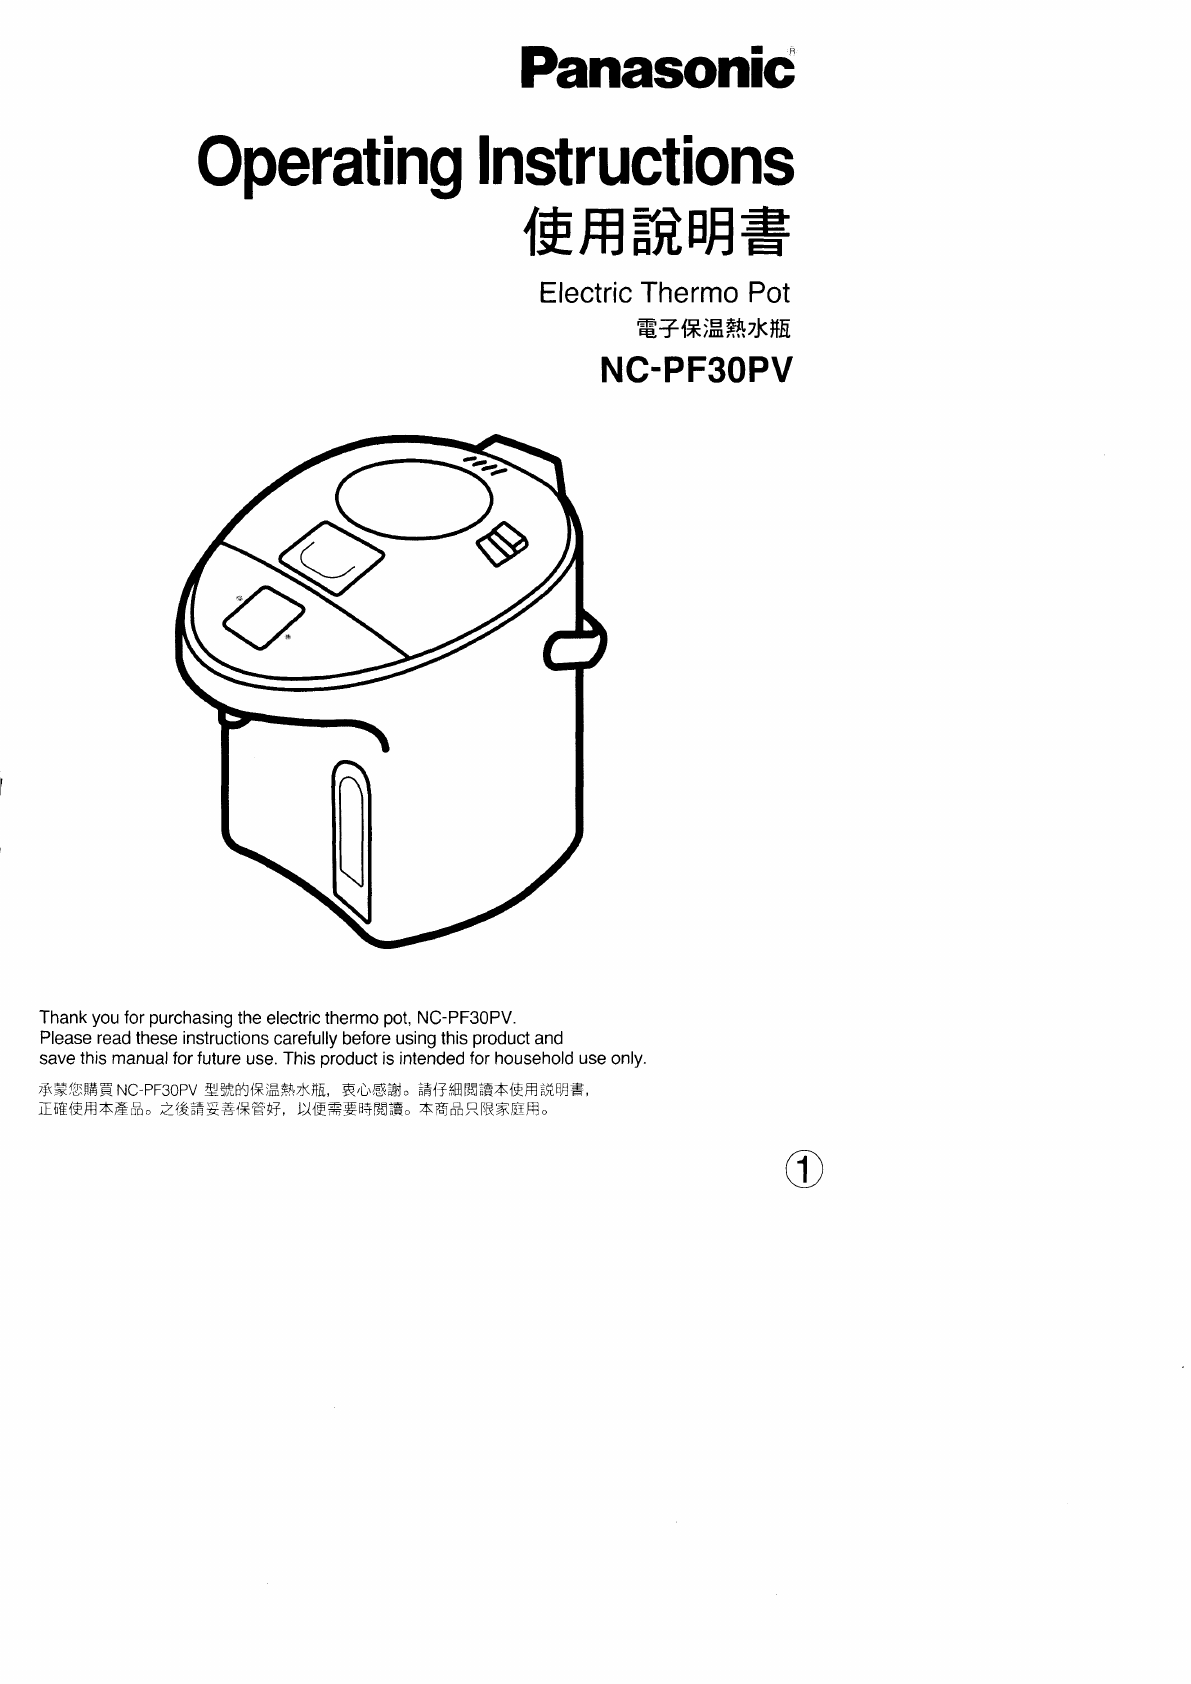 Panasonic Hot Beverage Maker NC-PF30PV User Guide